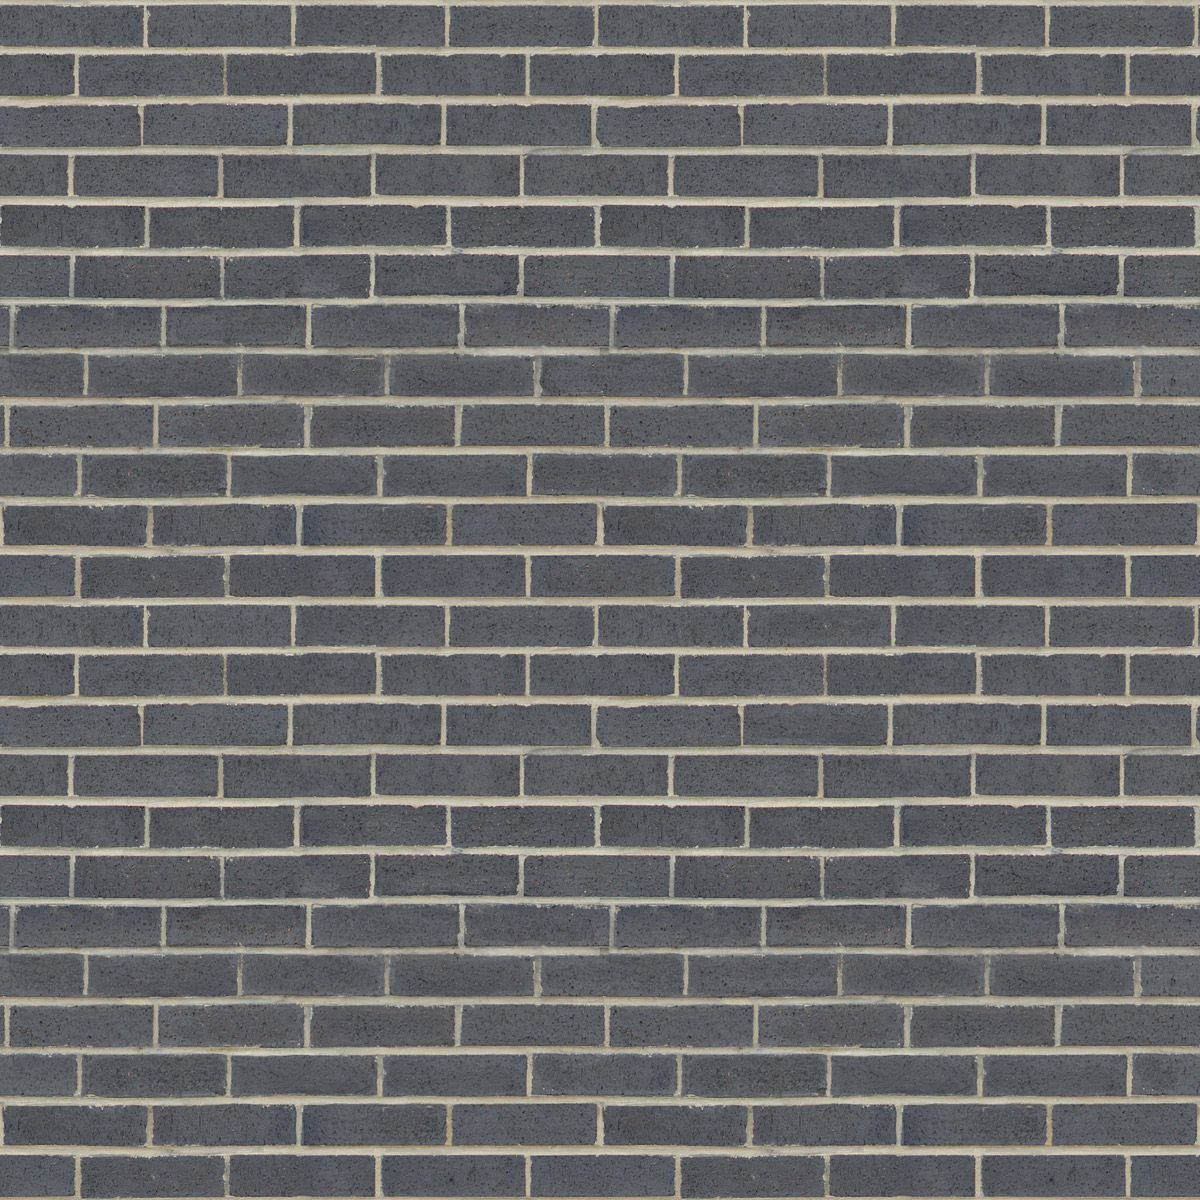 Unfinished brick wall texture for creating environment texture maps - Texturise Free Seamless Tileable Textures And Maps Textures With Bump Specular And Displacement Maps For